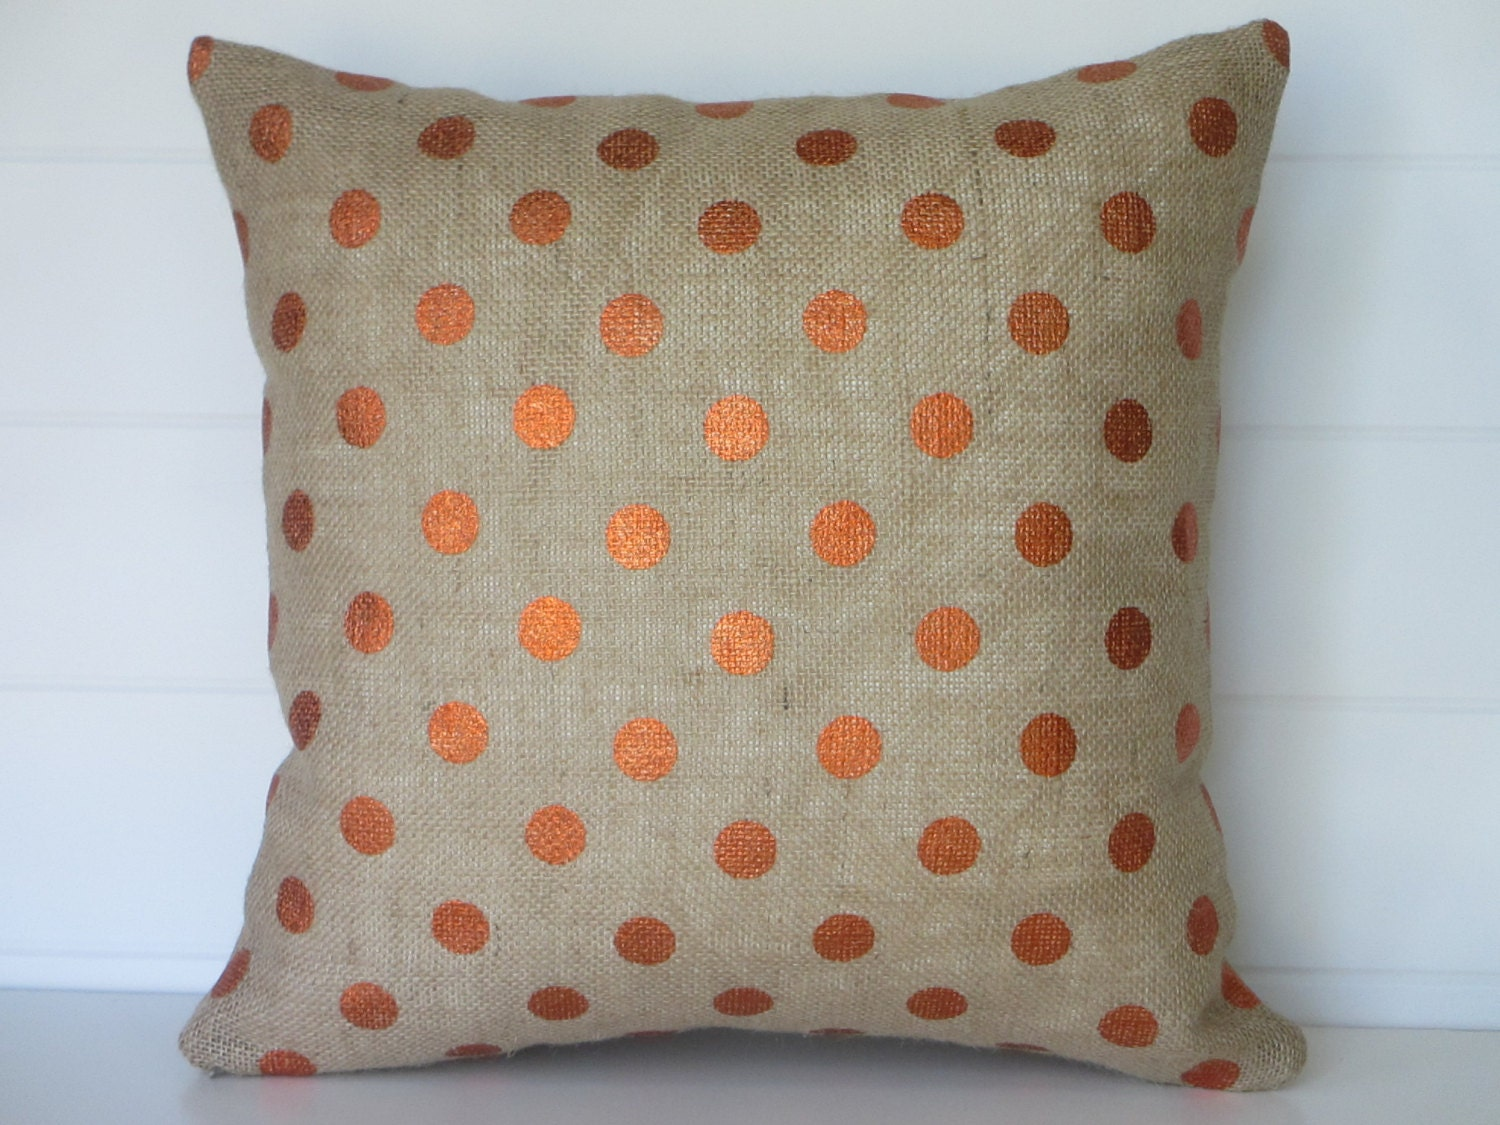 Decorative Pillows For Fall : Fall Pillow Cover Holiday Pillows by ComfortsofHomeDecor on Etsy